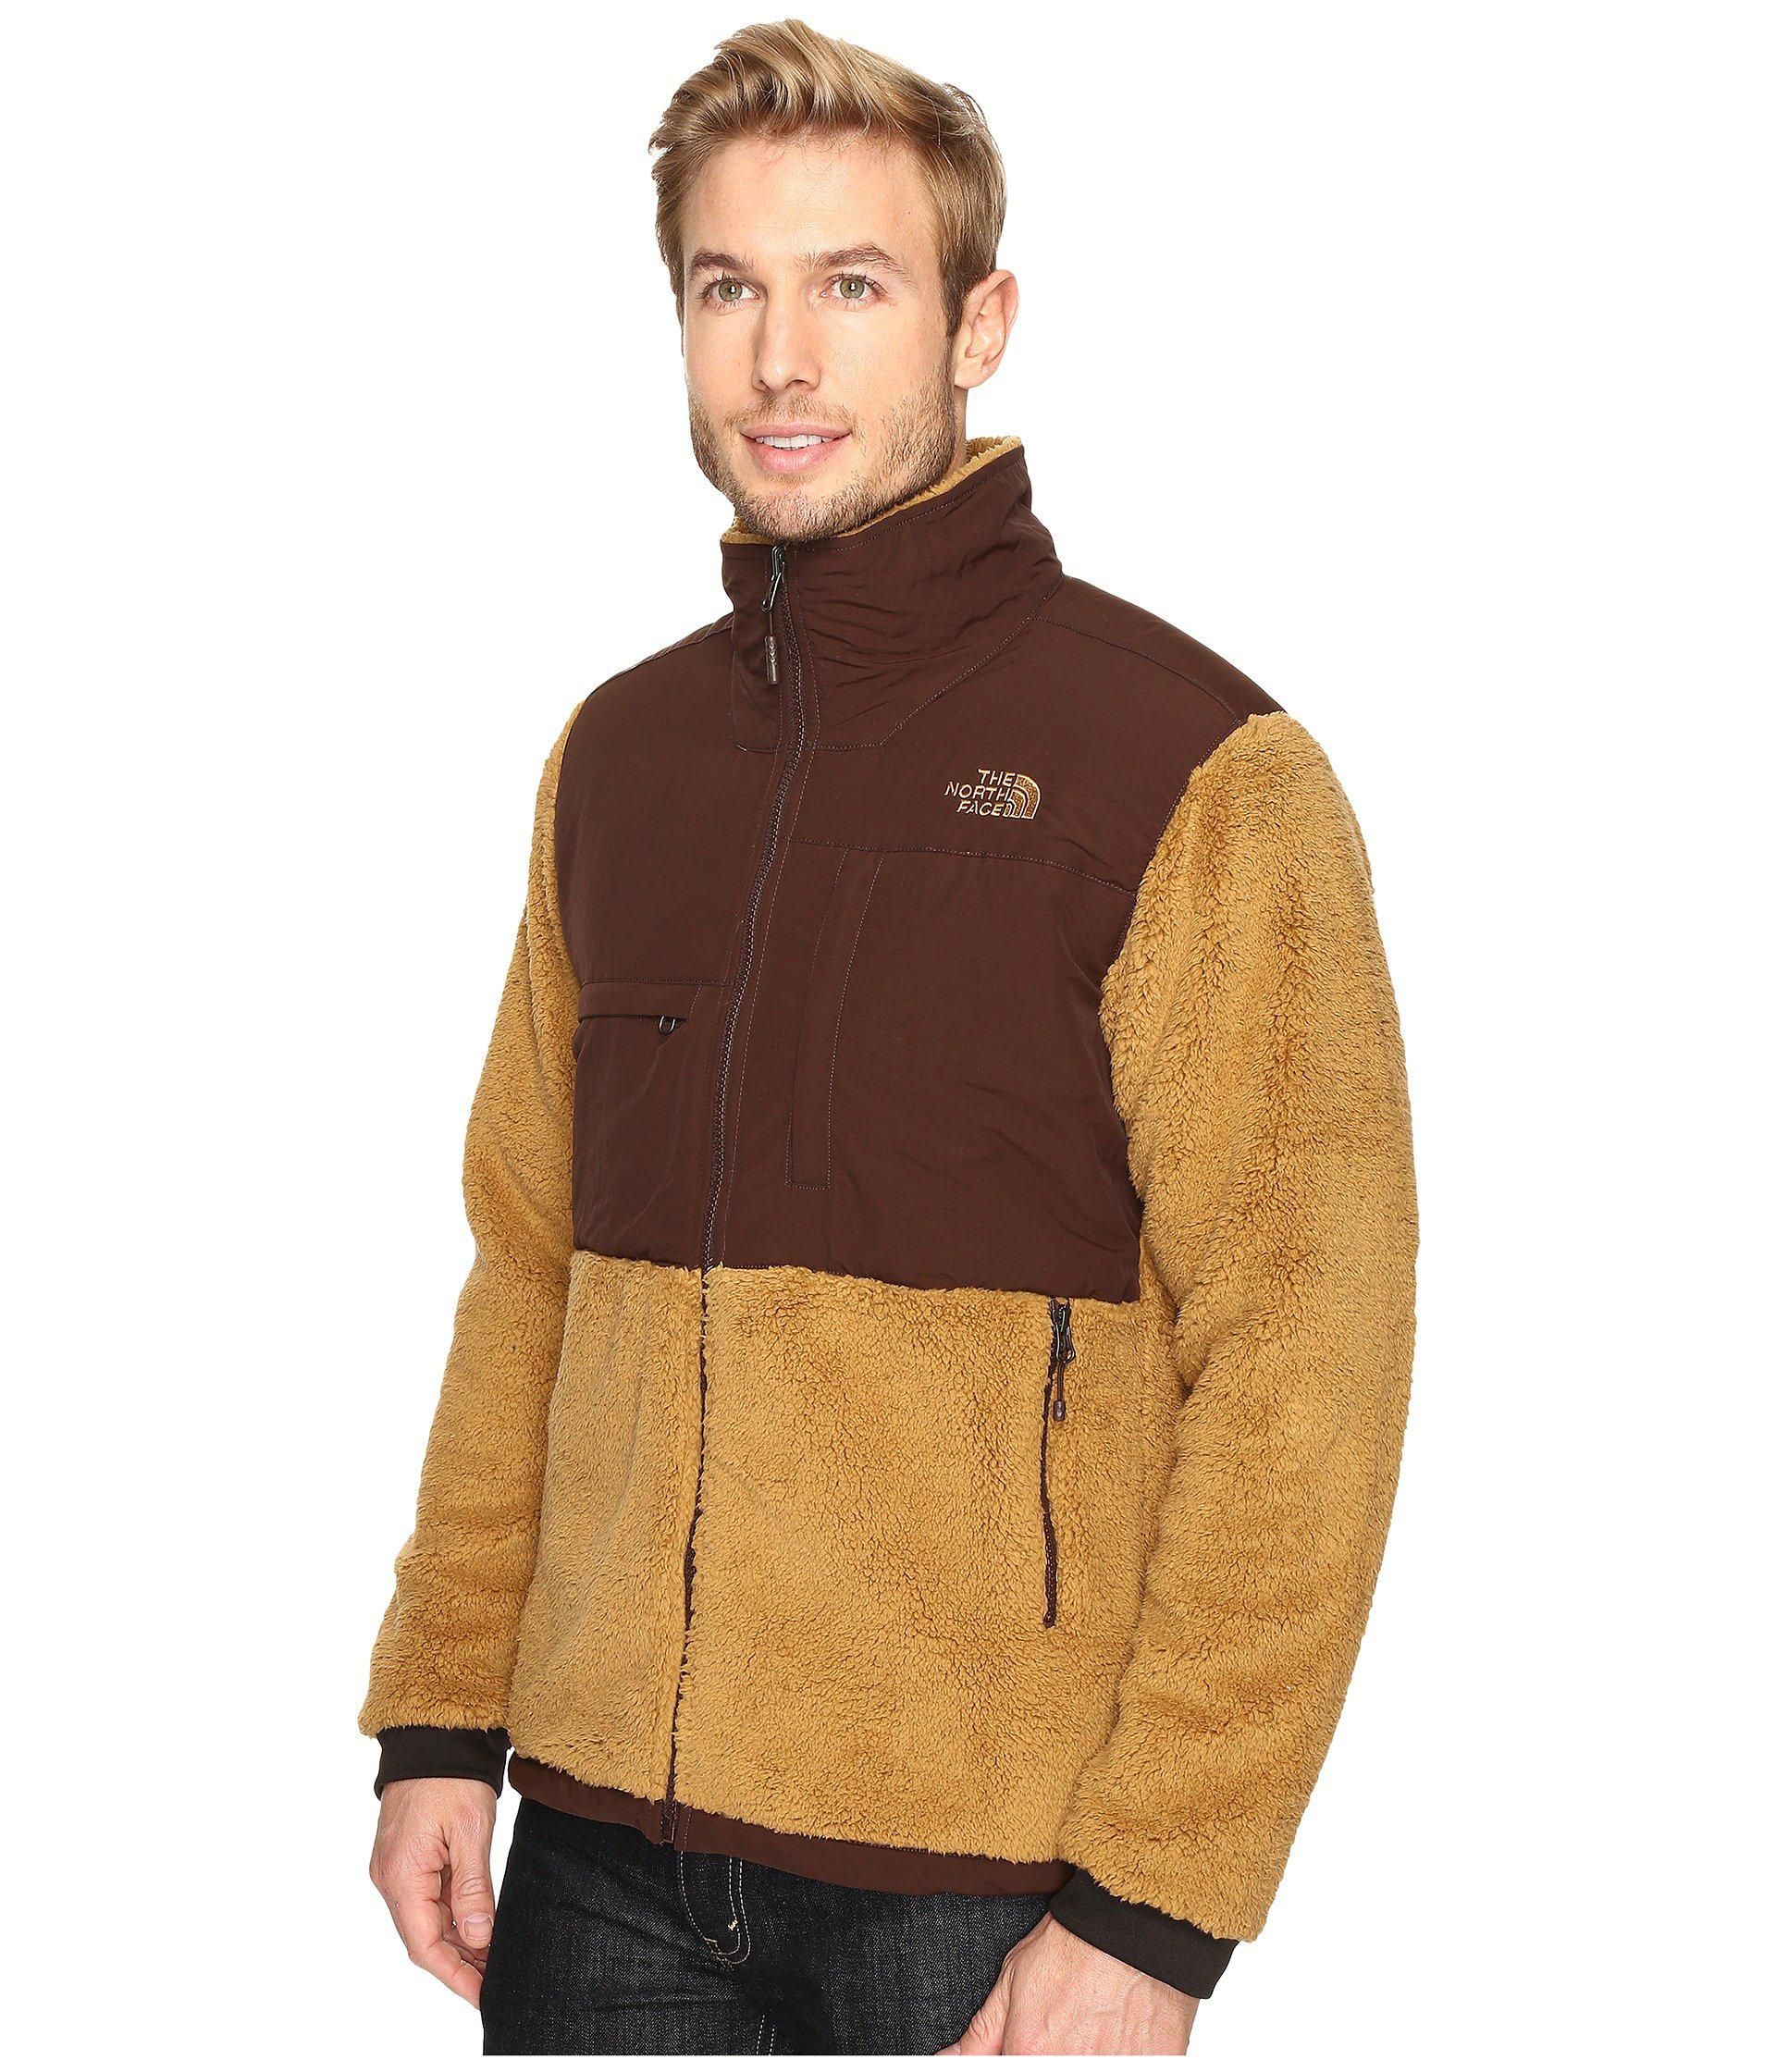 8910fa563eb6 ... clearance lyst the north face novelty denali jacket in brown for men  18403 54f78